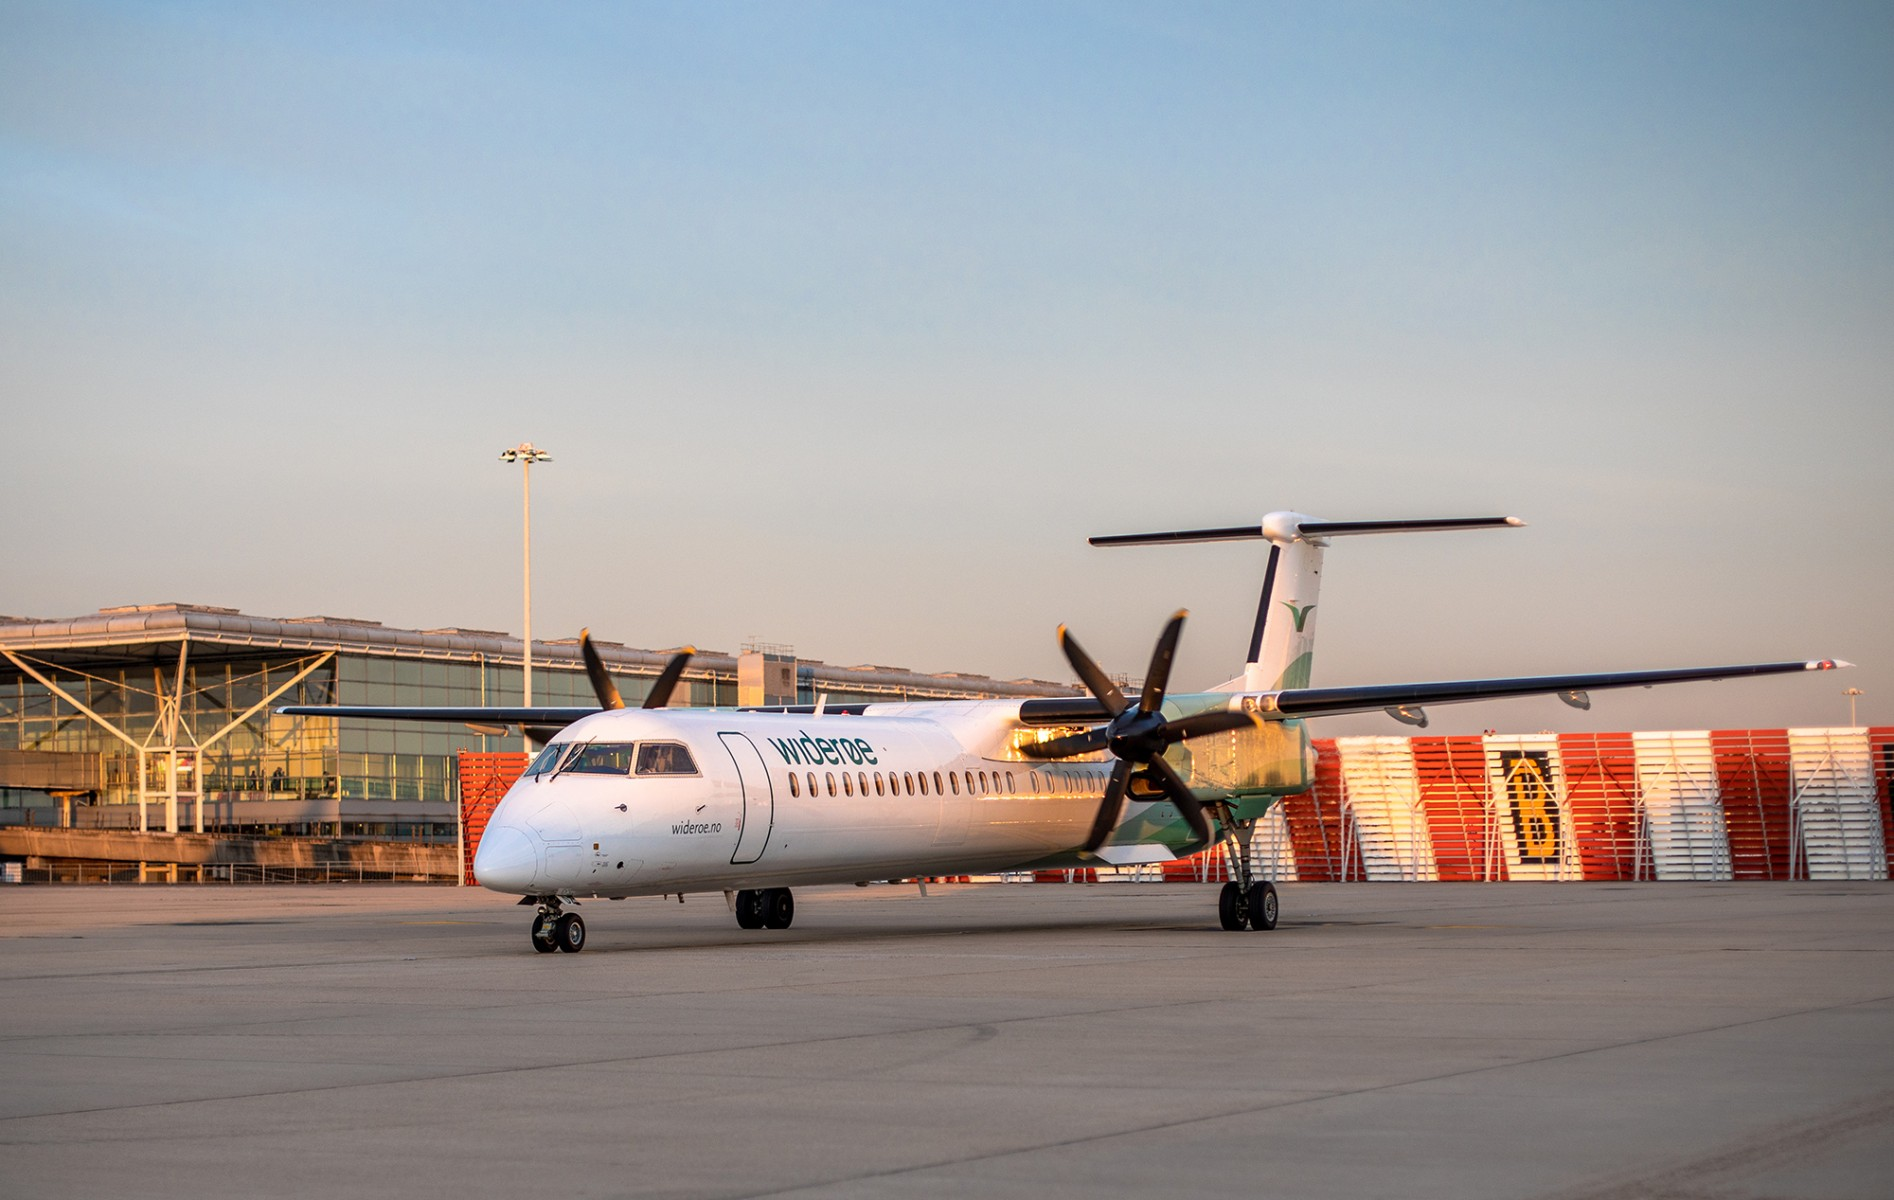 Long Stay Car Park Stansted >> First London Stansted to Kristiansand flights celebrated